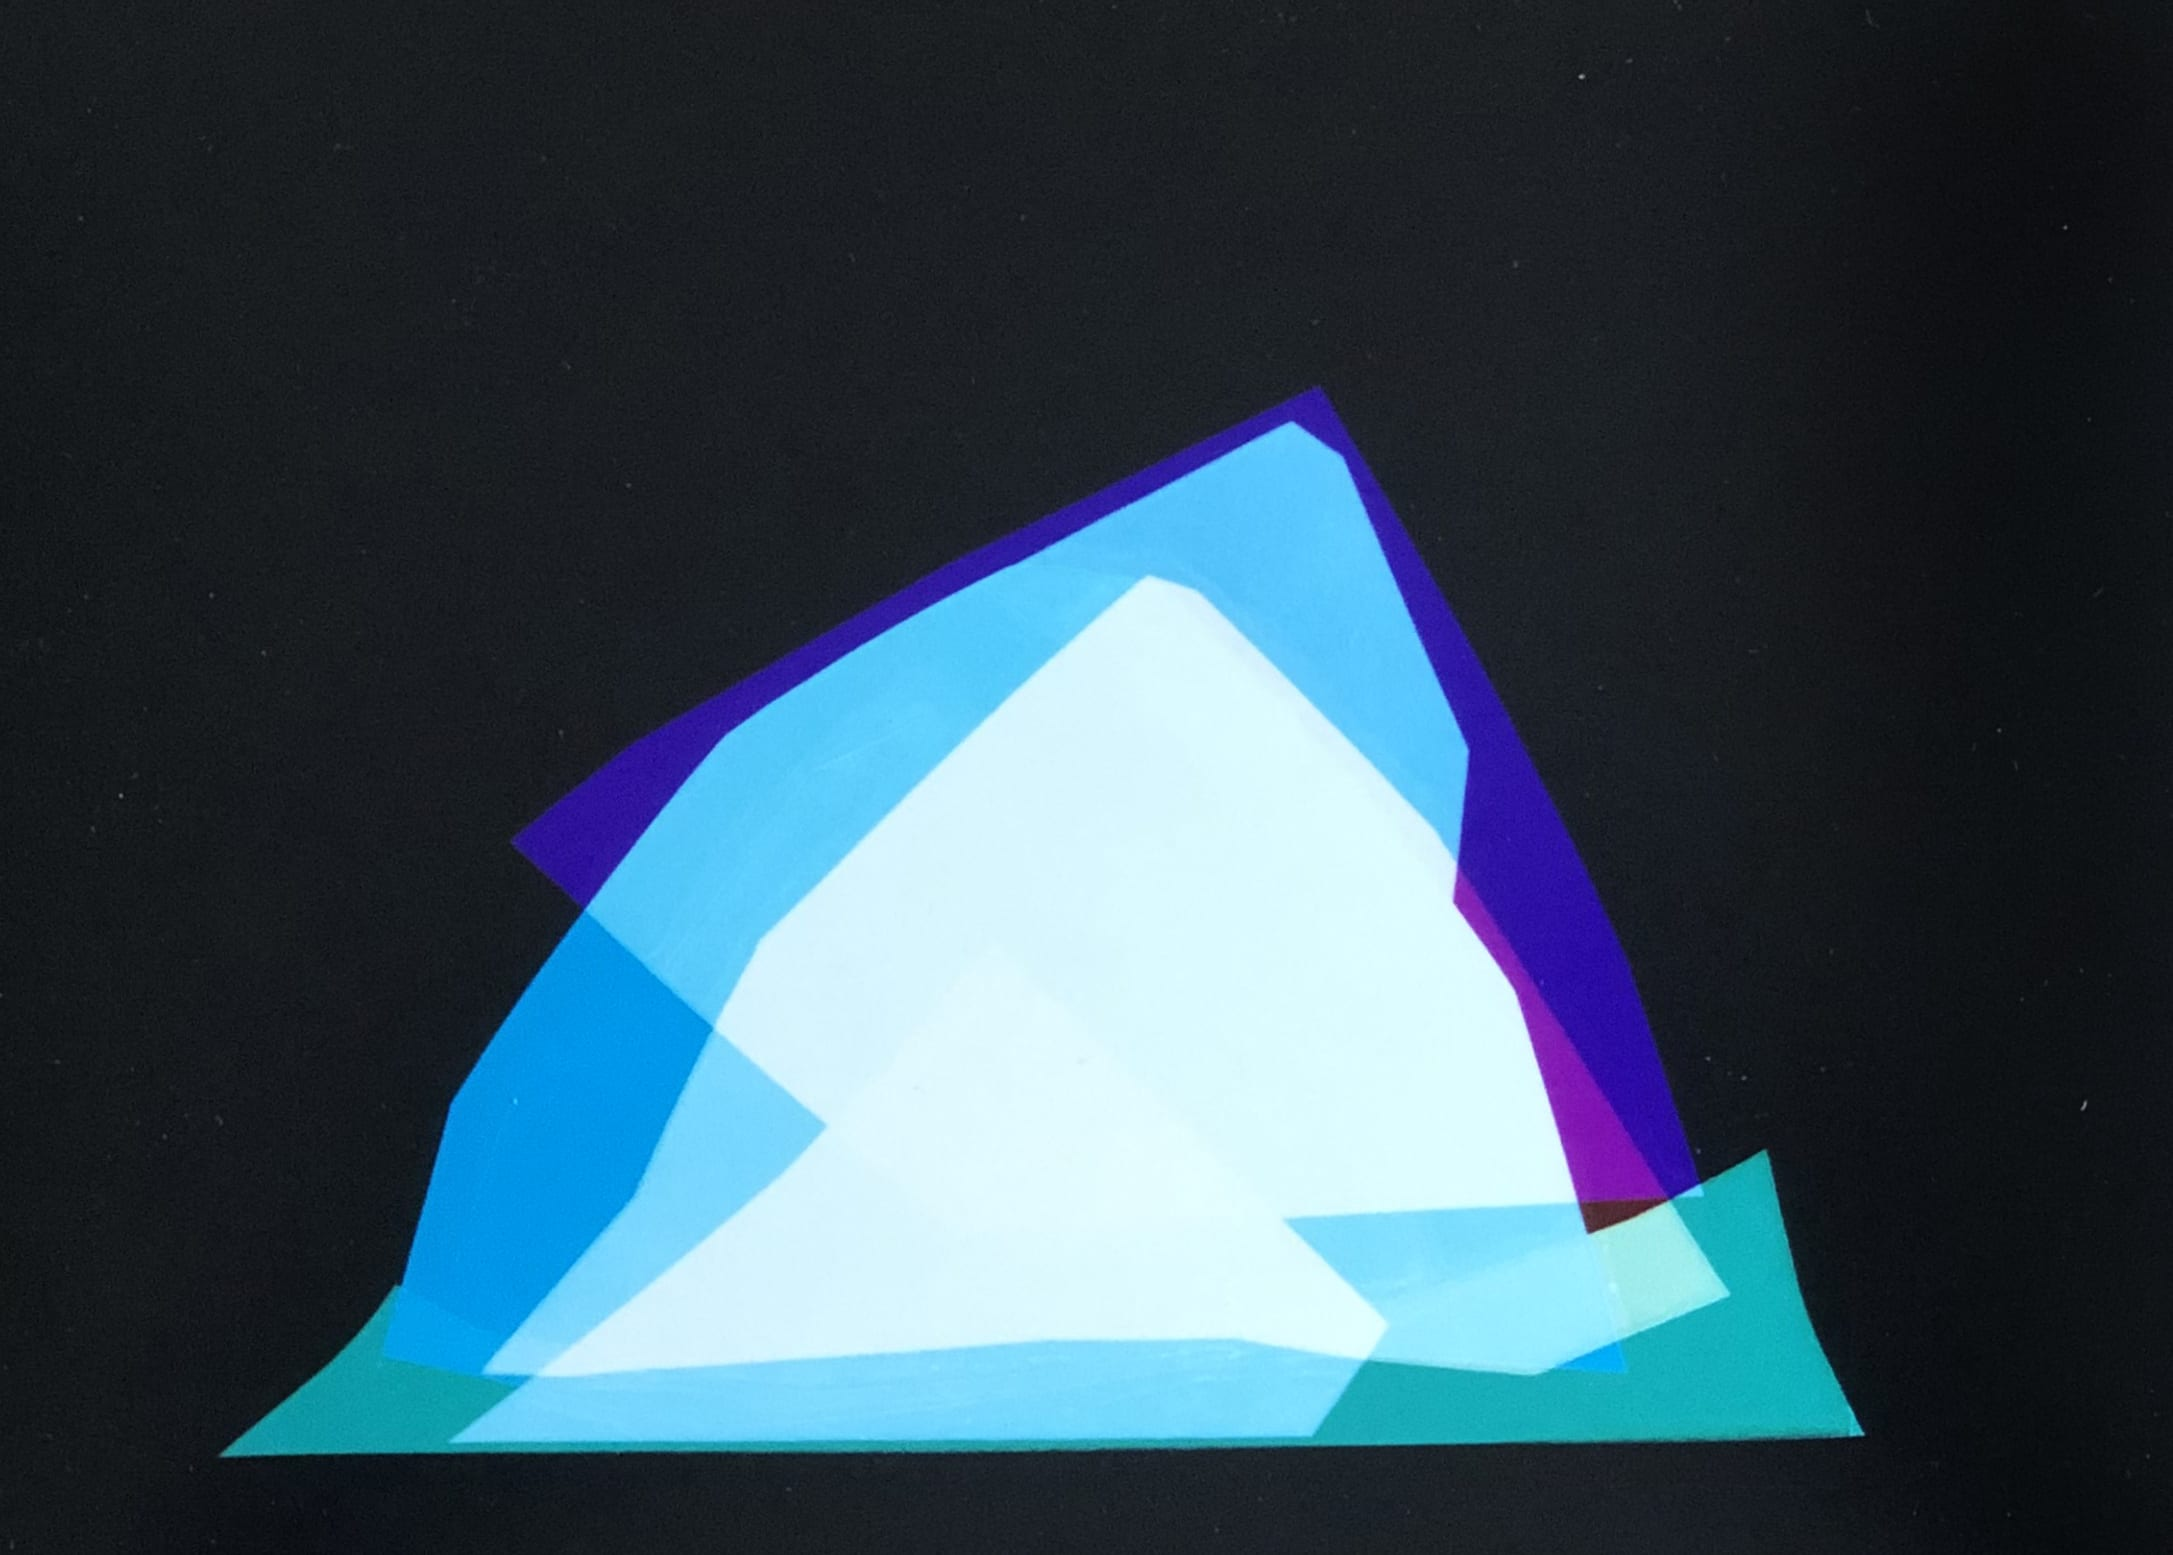 "<span class=""link fancybox-details-link""><a href=""/artists/26-liz-nielsen/works/202-liz-nielsen-mountain-shapes-ii-2019/"">View Detail Page</a></span><div class=""artist""><strong>Liz Nielsen</strong></div> <div class=""title""><em>Mountain Shapes II</em>, 2019</div> <div class=""medium"">Analogue Chromogenic Photogram on Fuji Lustre<br /> Framed in a handmade white box frame with UV Perspex glaze<br /> Unique</div> <div class=""dimensions"">15.2 x 20.3 cm<br /> 6 x 8 in</div><div class=""price"">£1,000.00</div><div class=""copyright_line"">Copyright Liz Nielsen</div>"